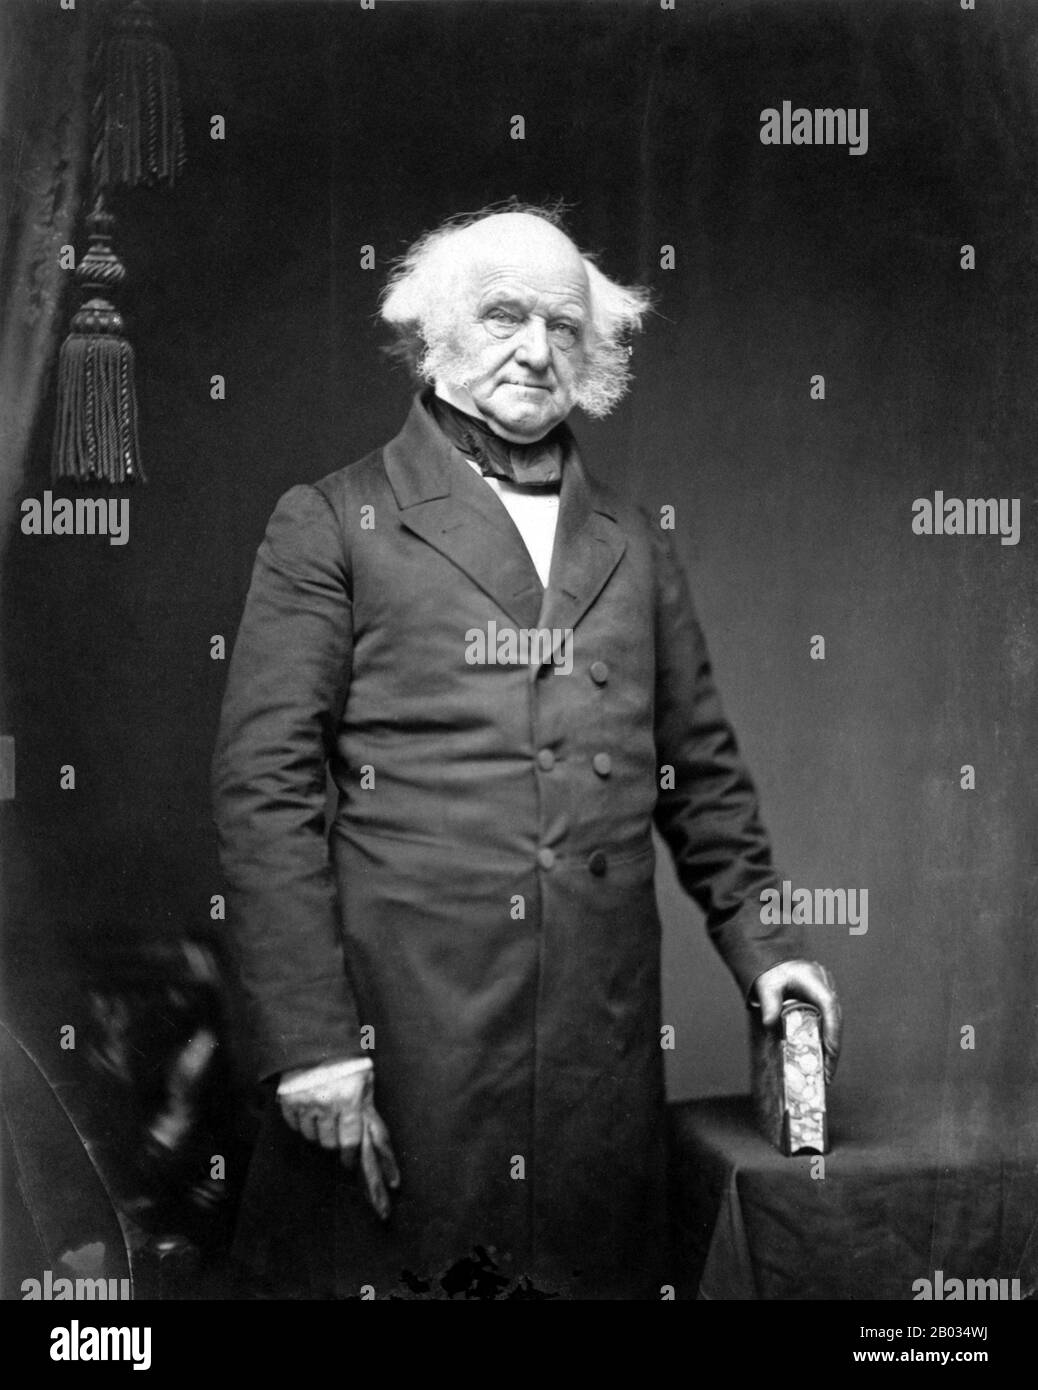 Martin Van Buren (December 5, 1782 – July 24, 1862) was an American politician who served as the eighth President of the United States (1837–41).  A member of the Democratic Party, he served in a number of senior roles, including eighth Vice President (1833–37) and tenth Secretary of State (1829–31), both under Andrew Jackson. Stock Photo